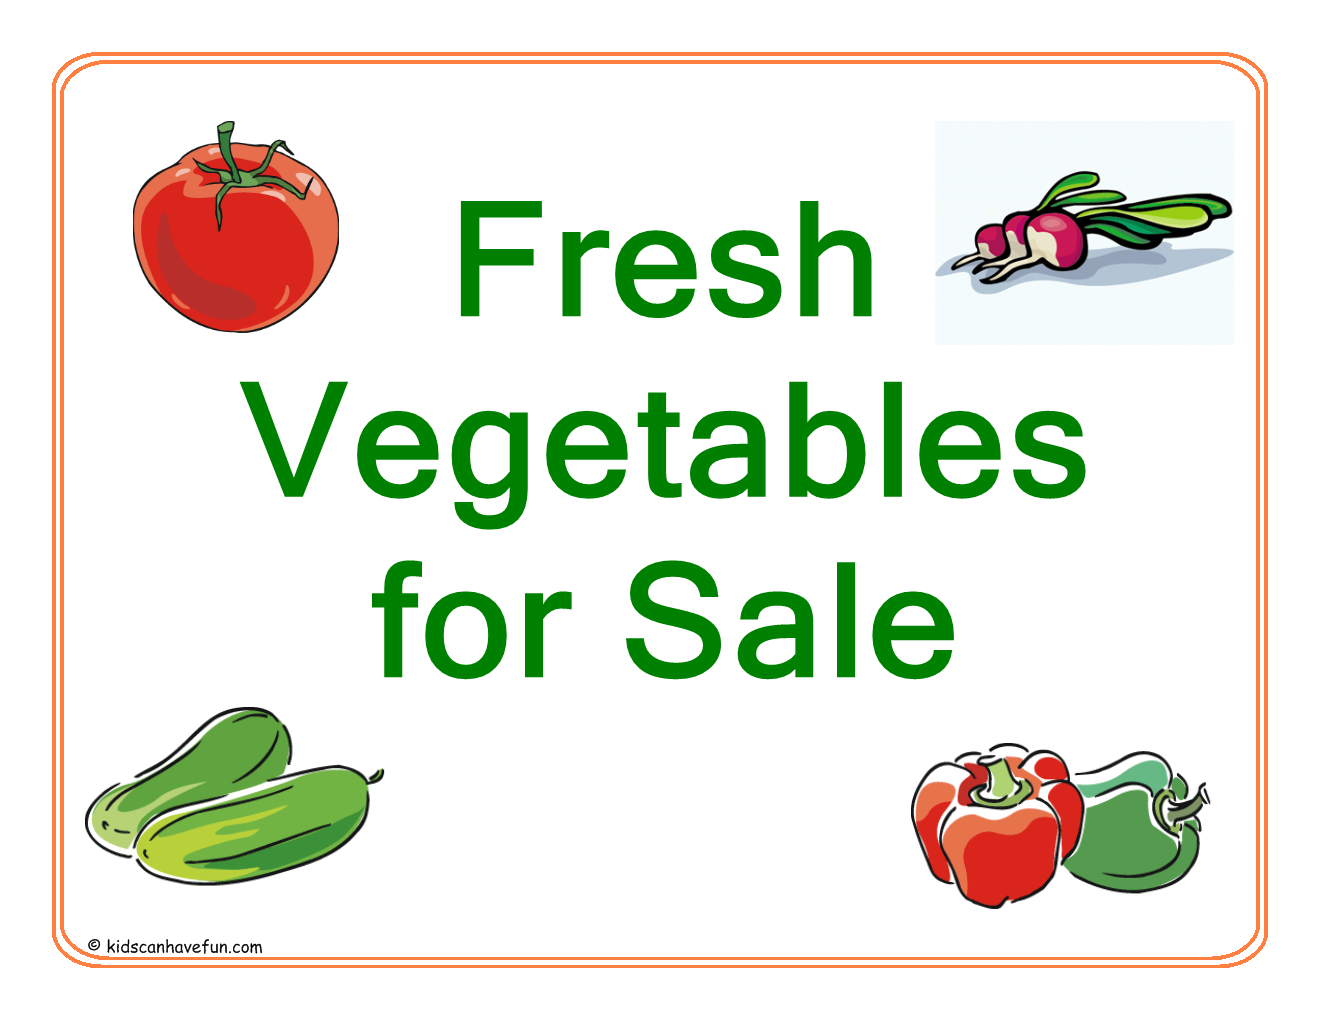 Vegetables for Sale Sign | Ideas for my little friends | Pinterest ...